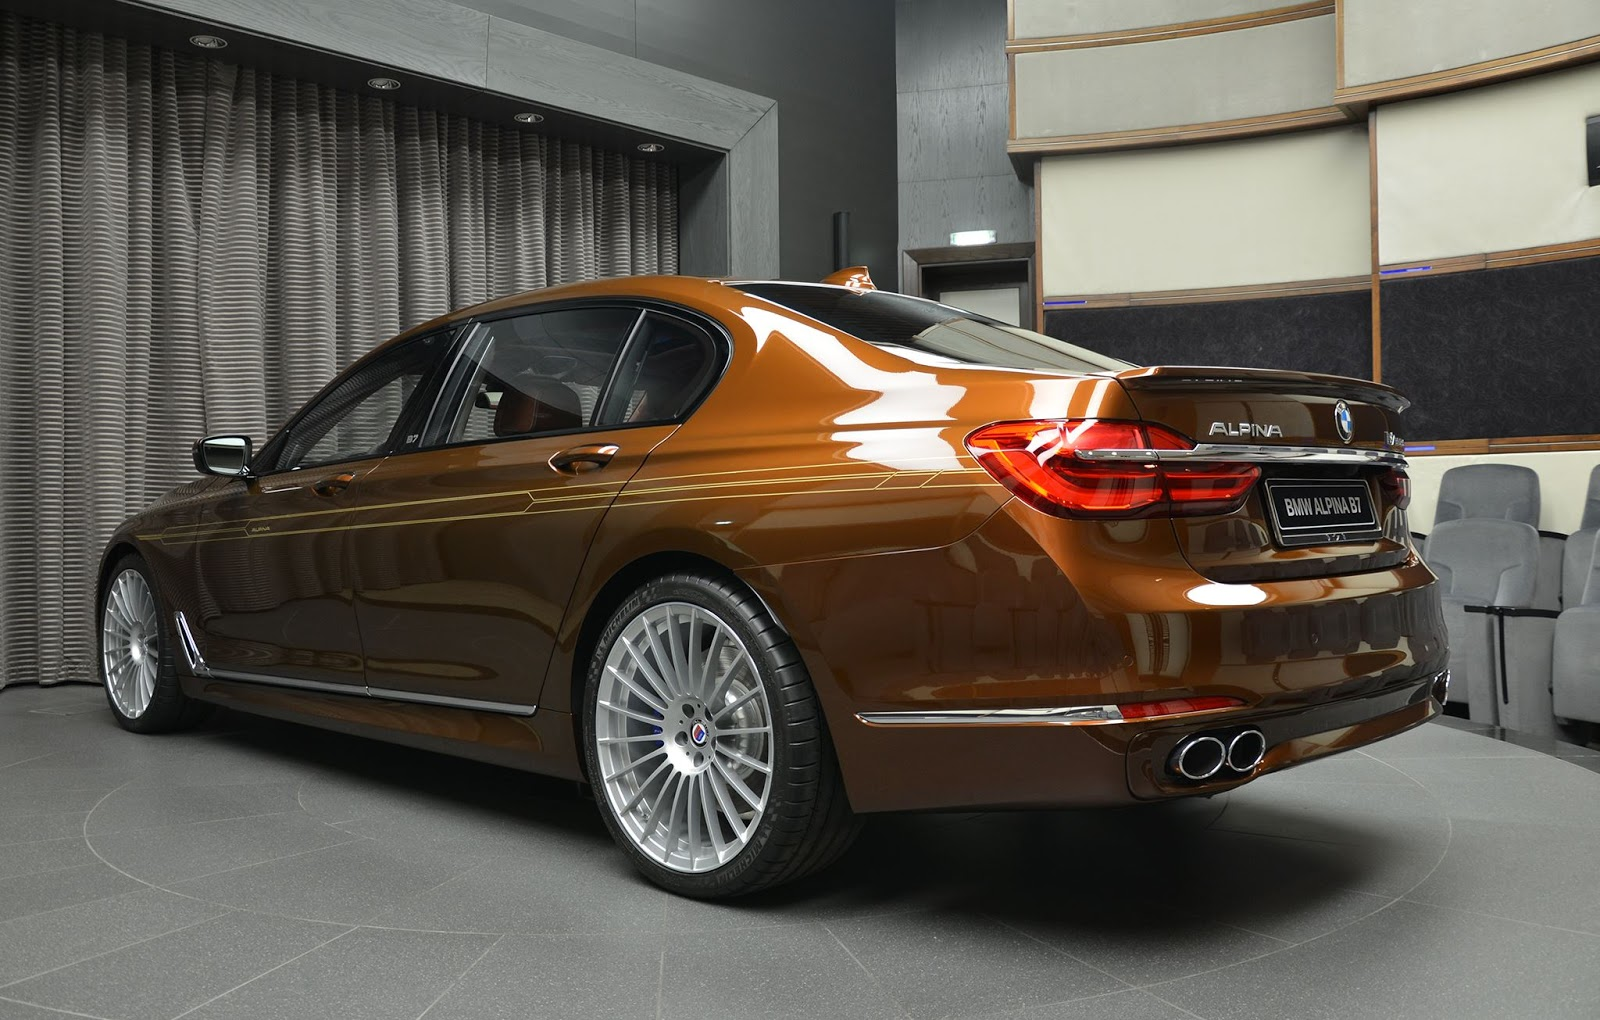 Alpina B7 2017 >> Alpina B7 Individual Certainly Looks Different In Chestnut Brown With Gold Accents | Carscoops